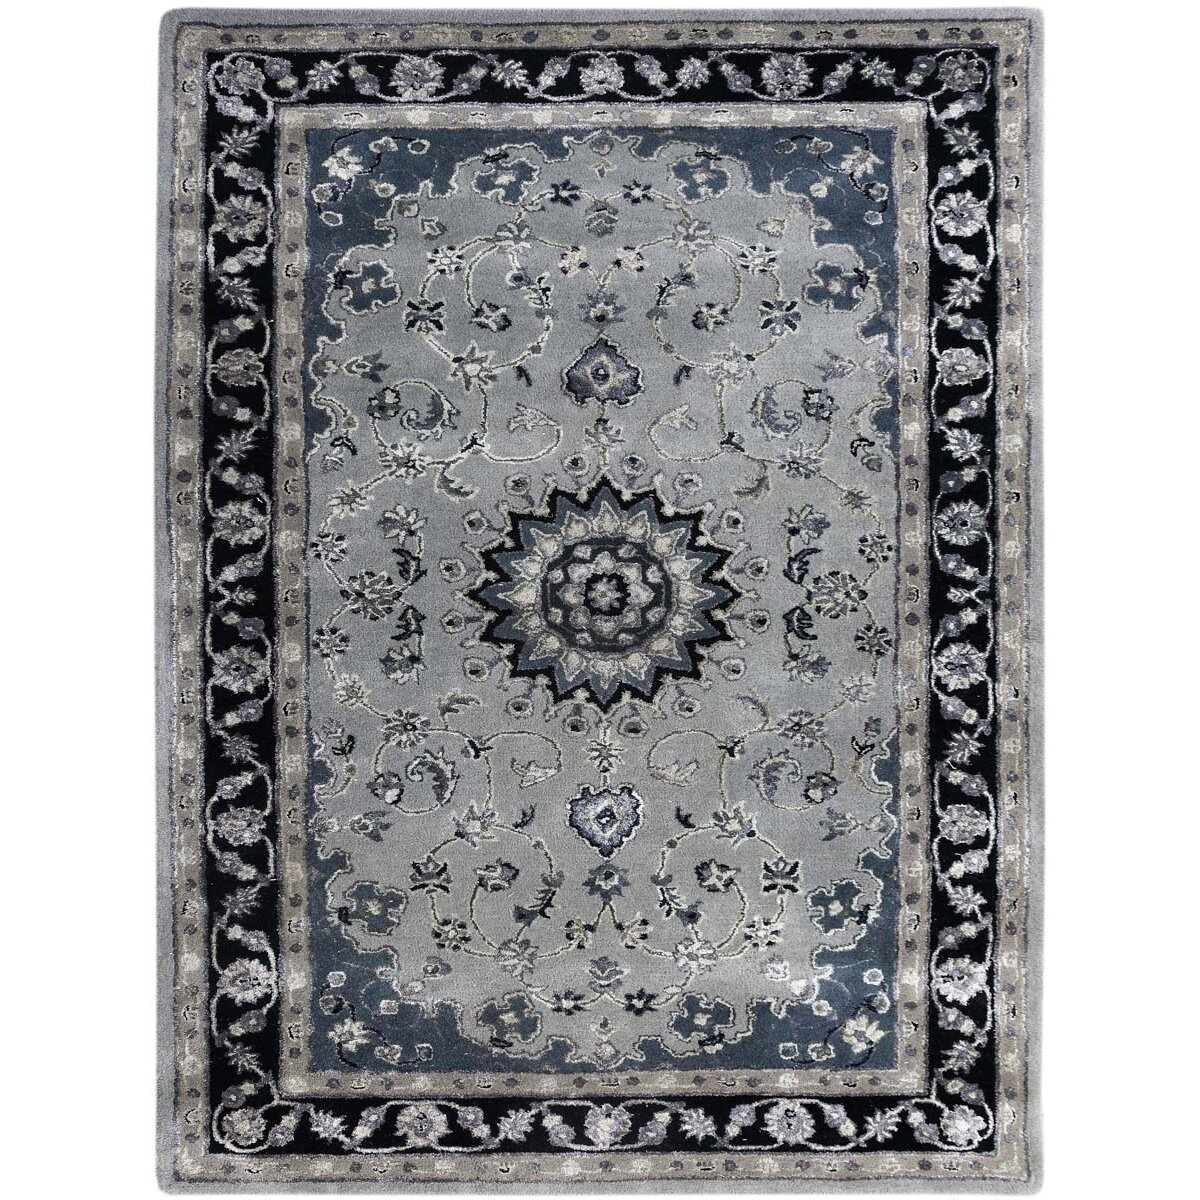 Eternity Landscapes Ocean Area Rug: AMER Rugs Eternity Hand-Tufted Gray/Navy Area Rug